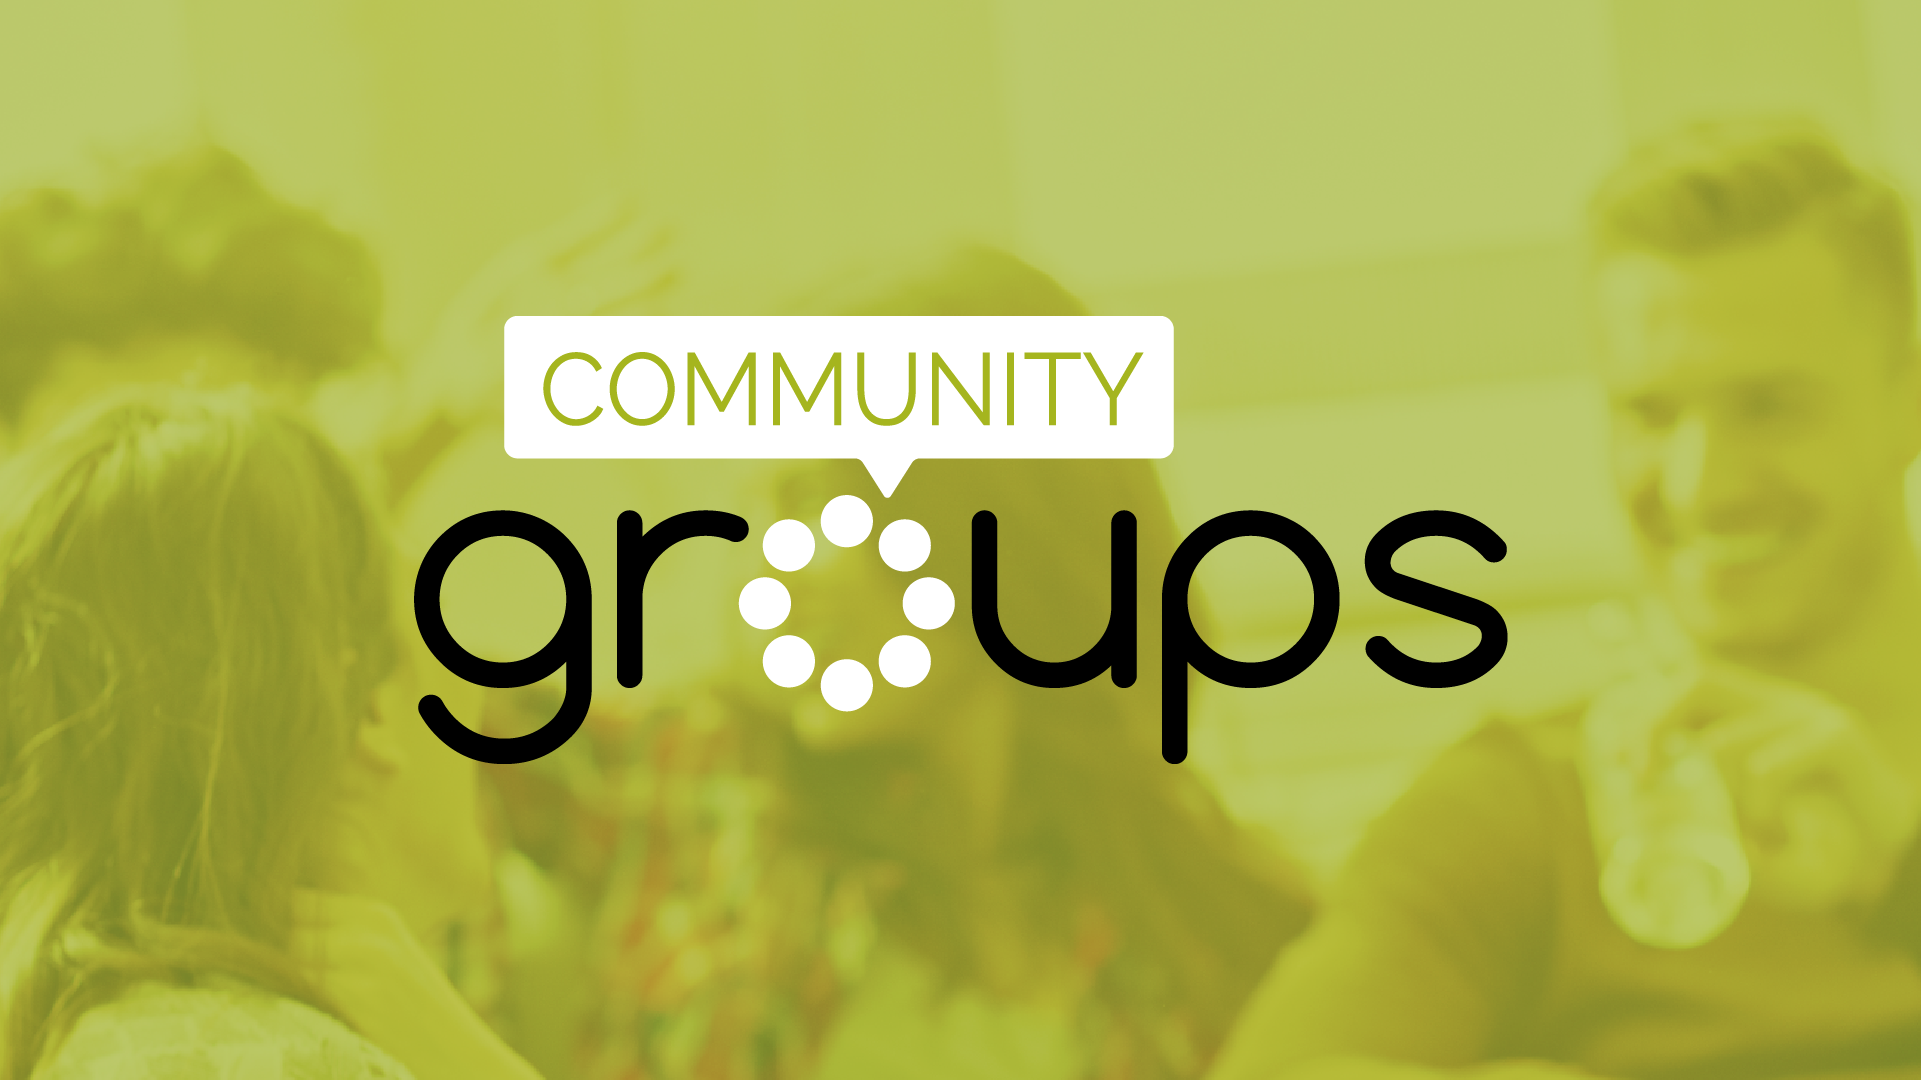 Click to find a community group for you